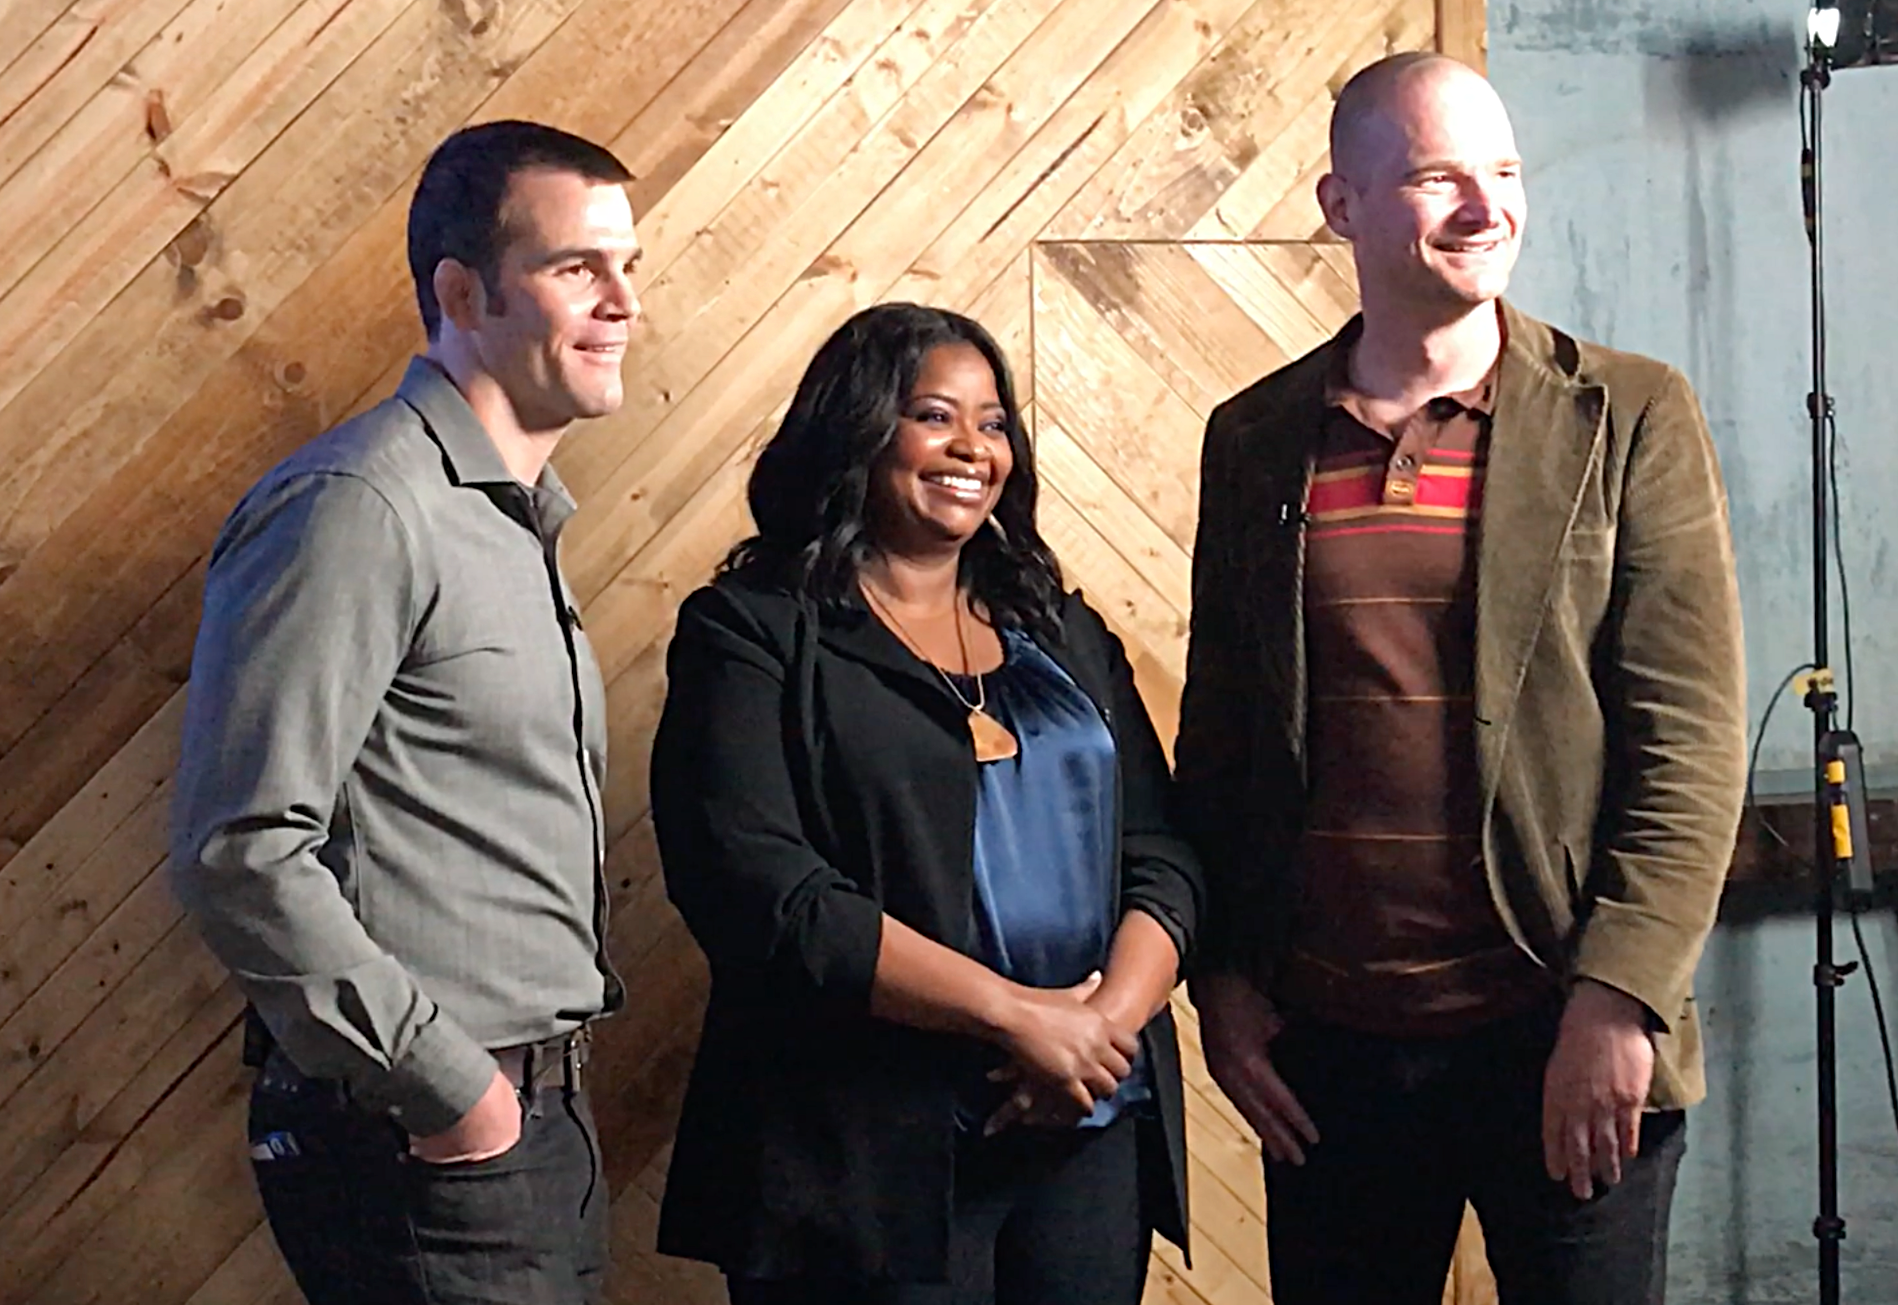 Film School Rejects - The Nelms Bros. Dish on Making a Movie w/ Octavia Spencer